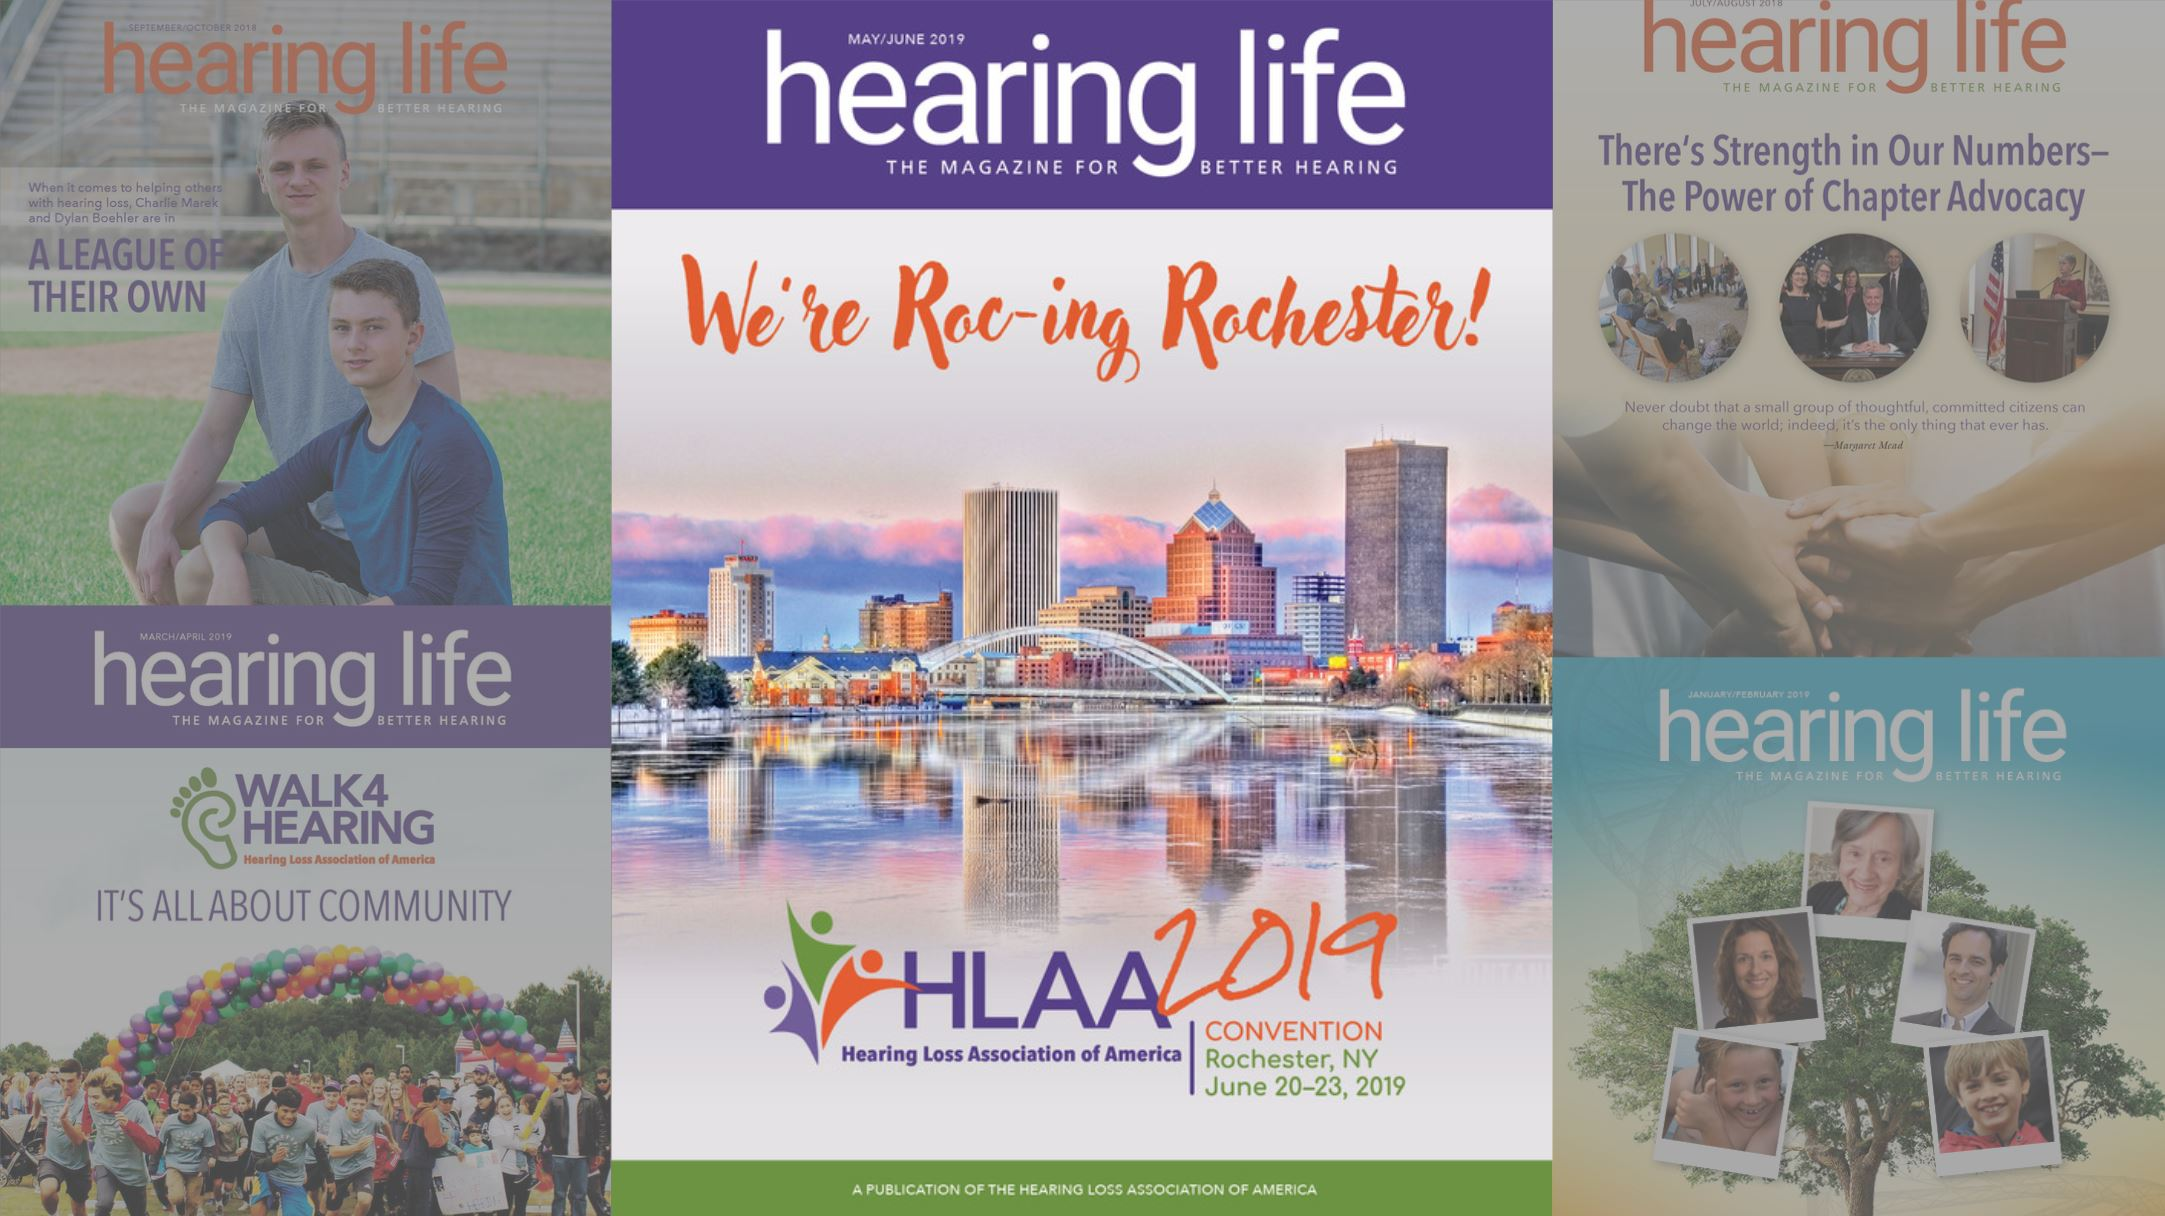 hearing life magazine covers. Hearing Life magazine is the magazine for better hearing, and is a great resource for people with hearing aids, the hearing impaired, and cochlear implant users. This month features an article on hearOclub, the hearing aid battery delivery service.